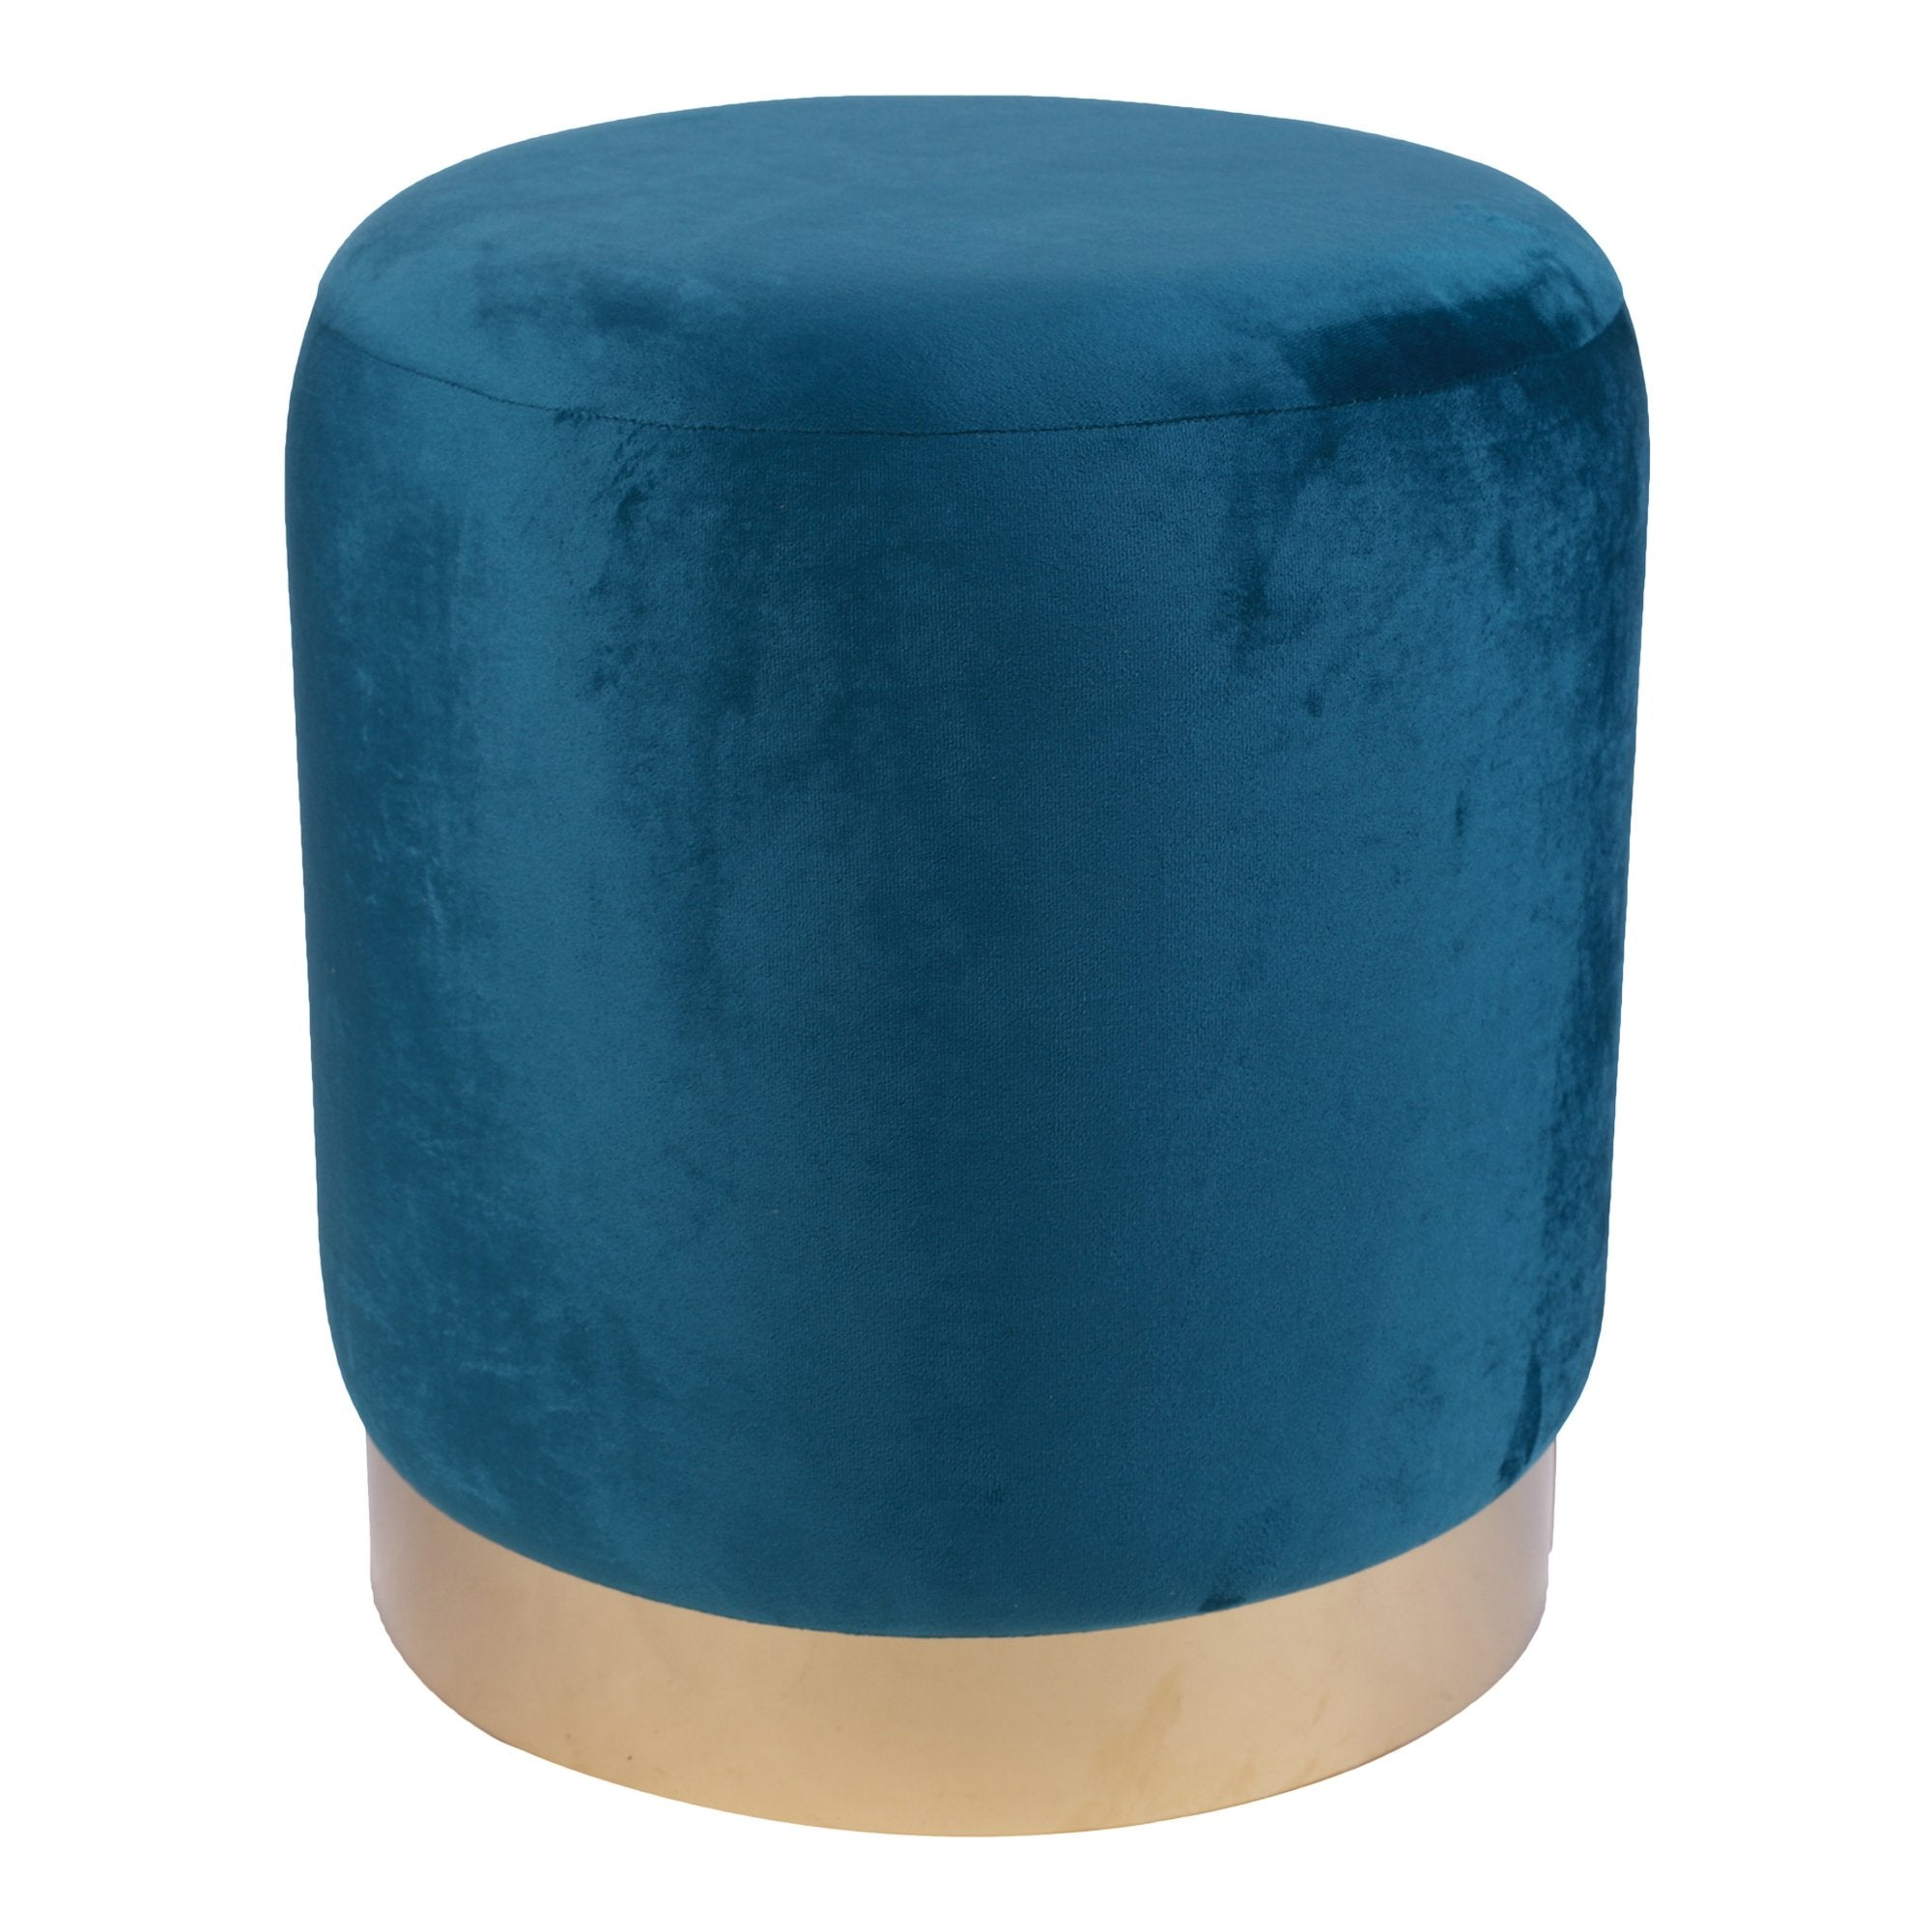 Round Ottoman in Royal Blue Color